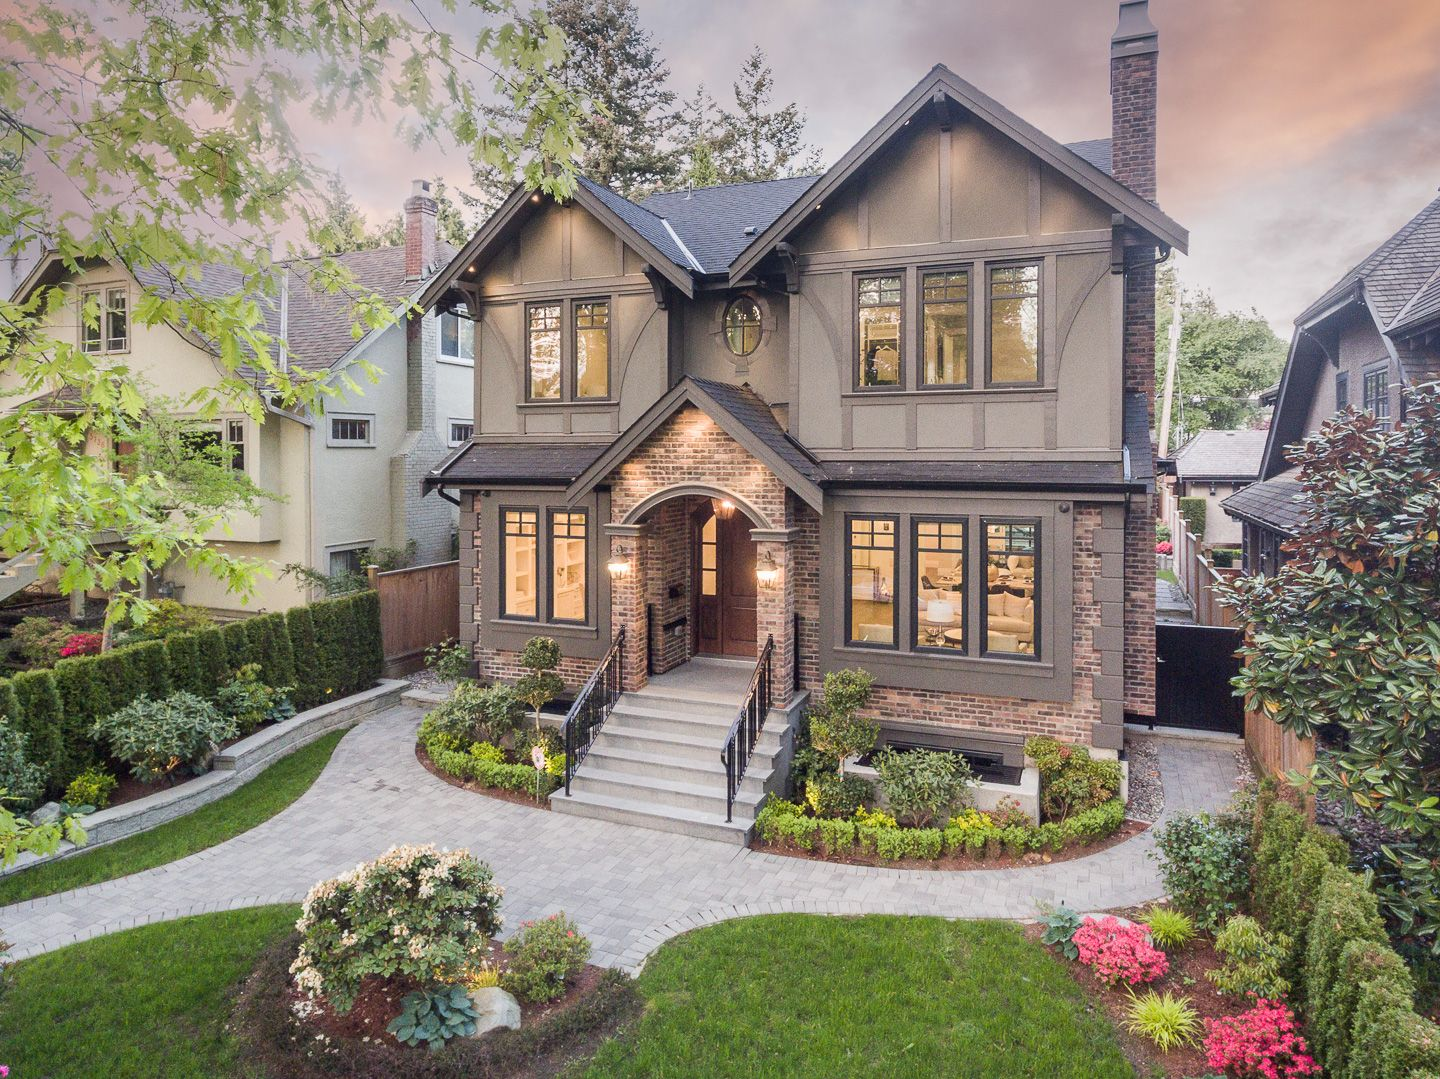 Main Photo: 5756 ALMA STREET in VANCOUVER: Southlands House for sale (Vancouver West)  : MLS®# R2588229